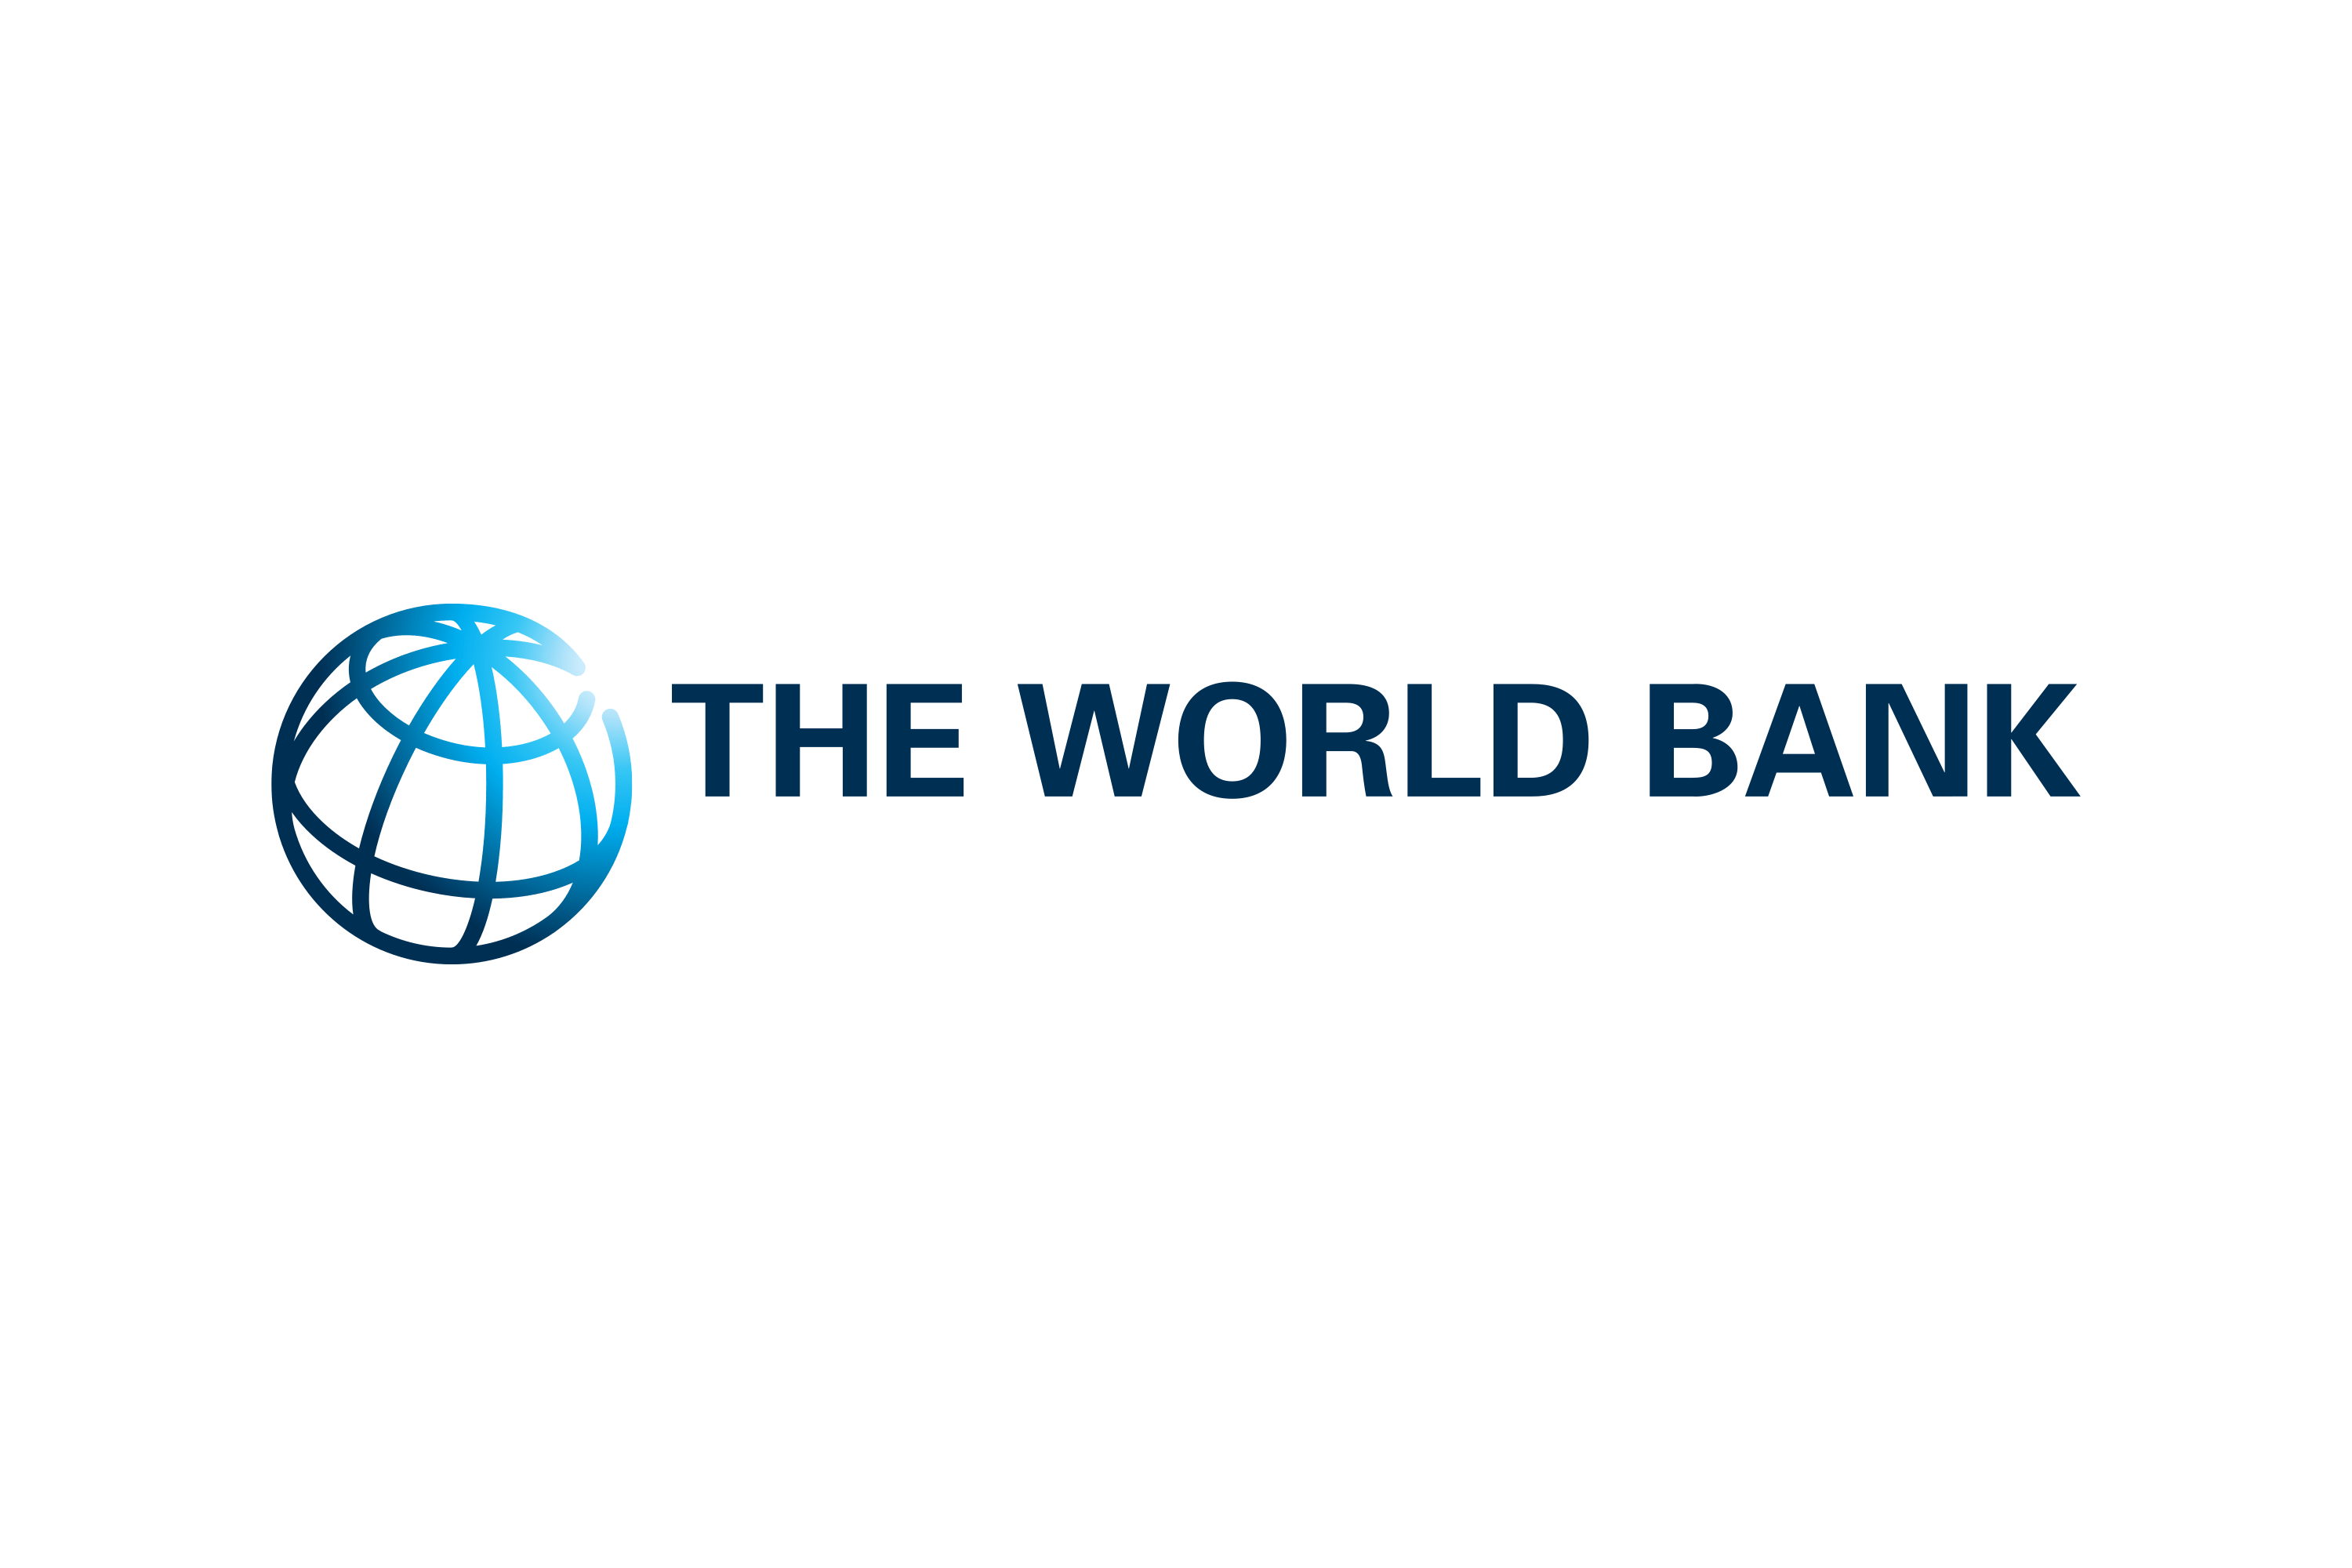 The global economy is expected to expand 5.6% in 2021, the fastest post-recession pace in 80 years, largely on strong rebounds from a few major economies. However, many emerging market and developing economies continue to struggle with the COVID-19 pandemic and its aftermath, the World Bank says in its June 2021 Global Economic Prospects.